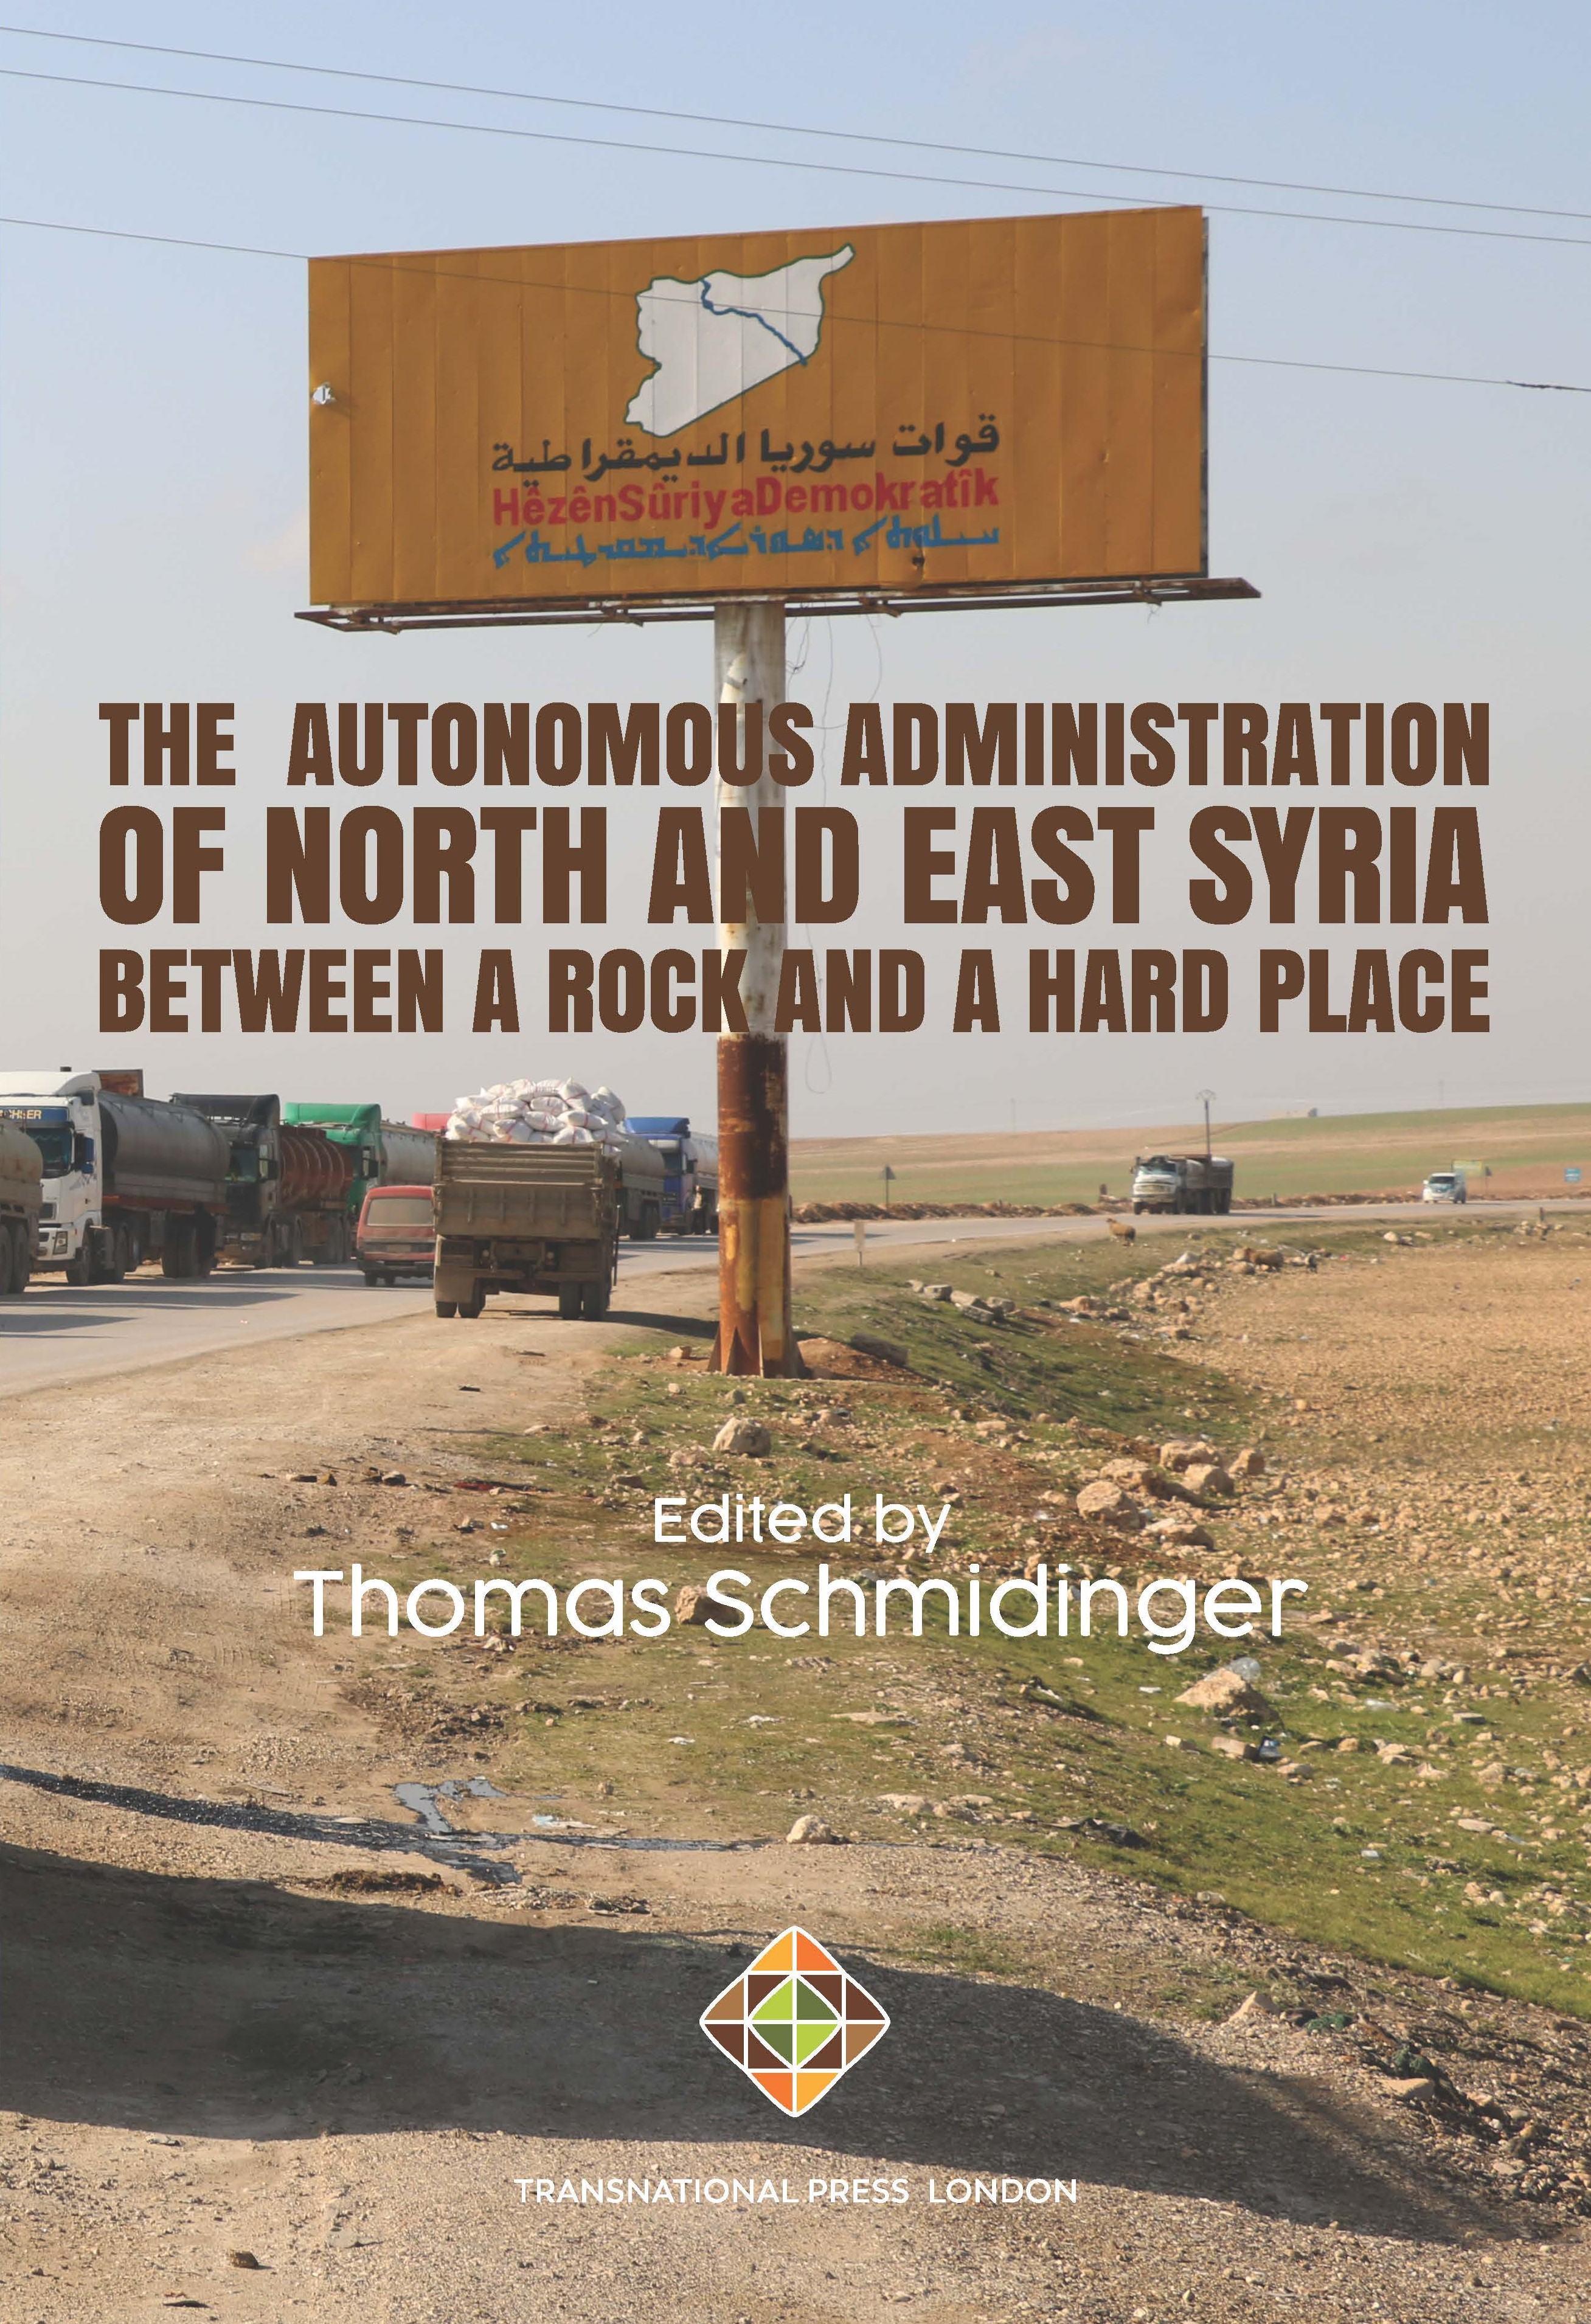 The Autonomous Administration of North and East Syria Between A Rock and A Hard Place